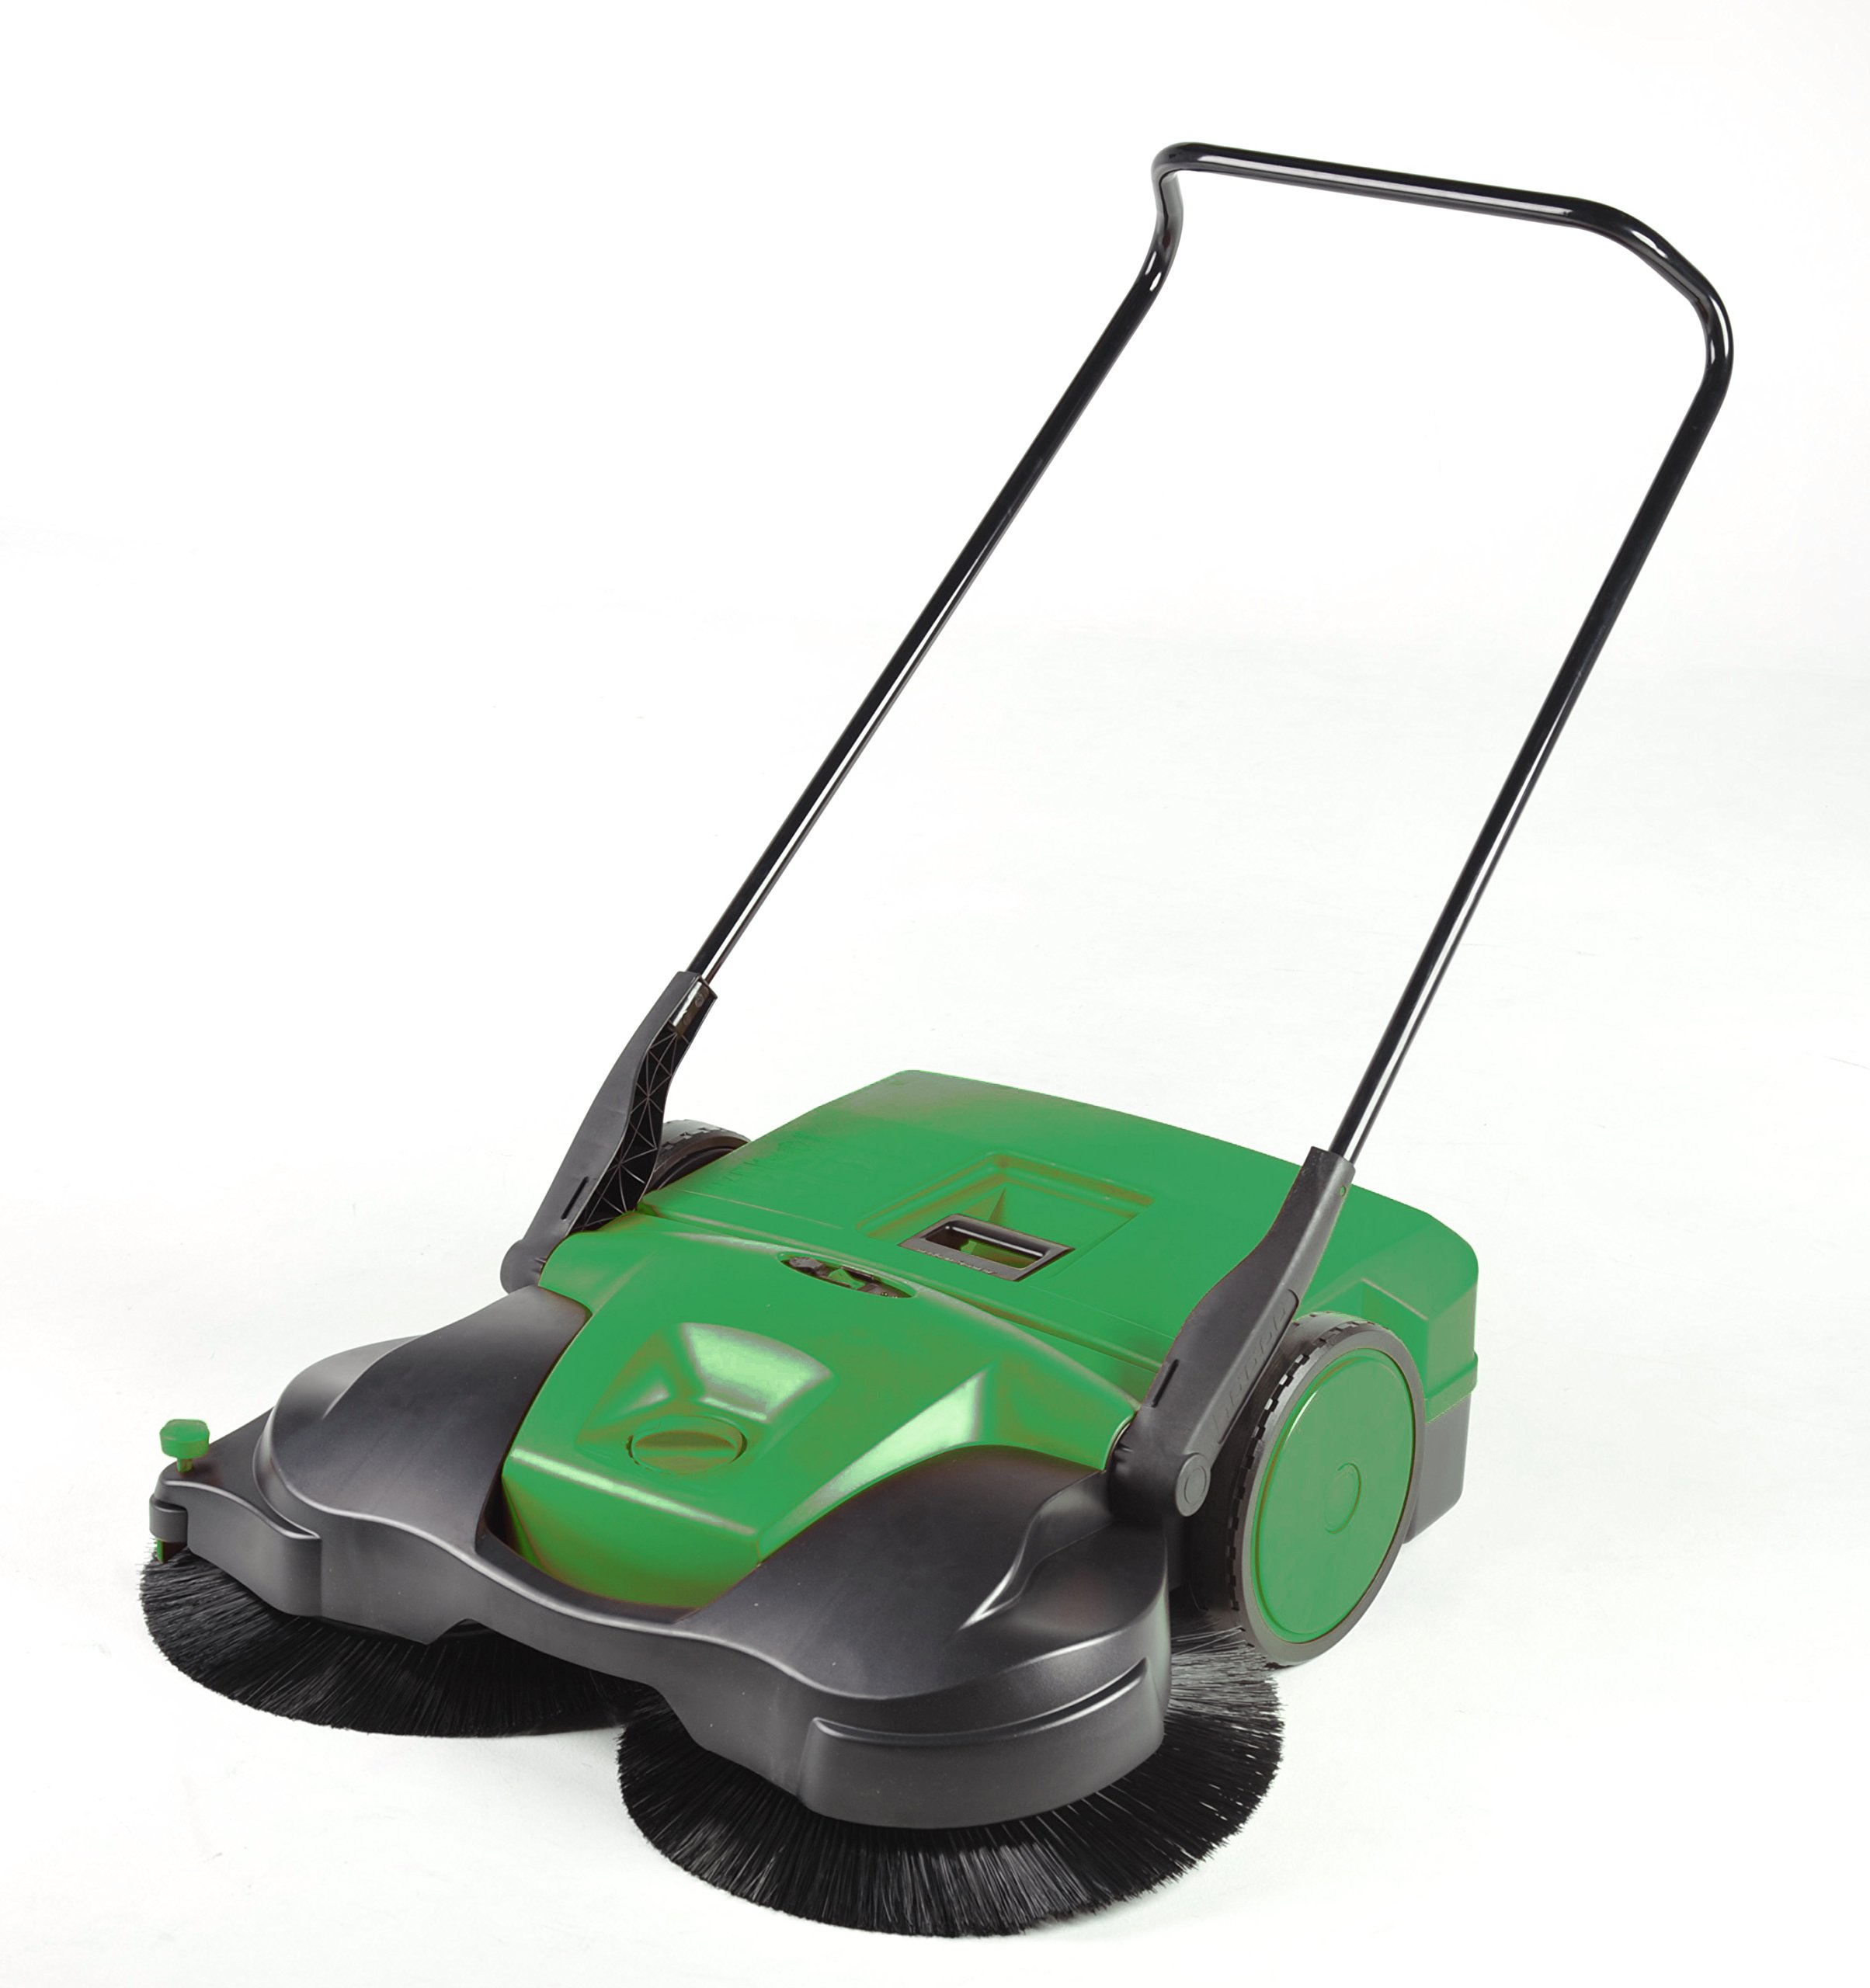 BISSELL BigGreen Commercial BG697 Battery Powered Triple Brush Push Power Sweeper, 13.2 gal Debris Container, 42'' Height, 38'' Width, Polypropylene, Green by Bissell